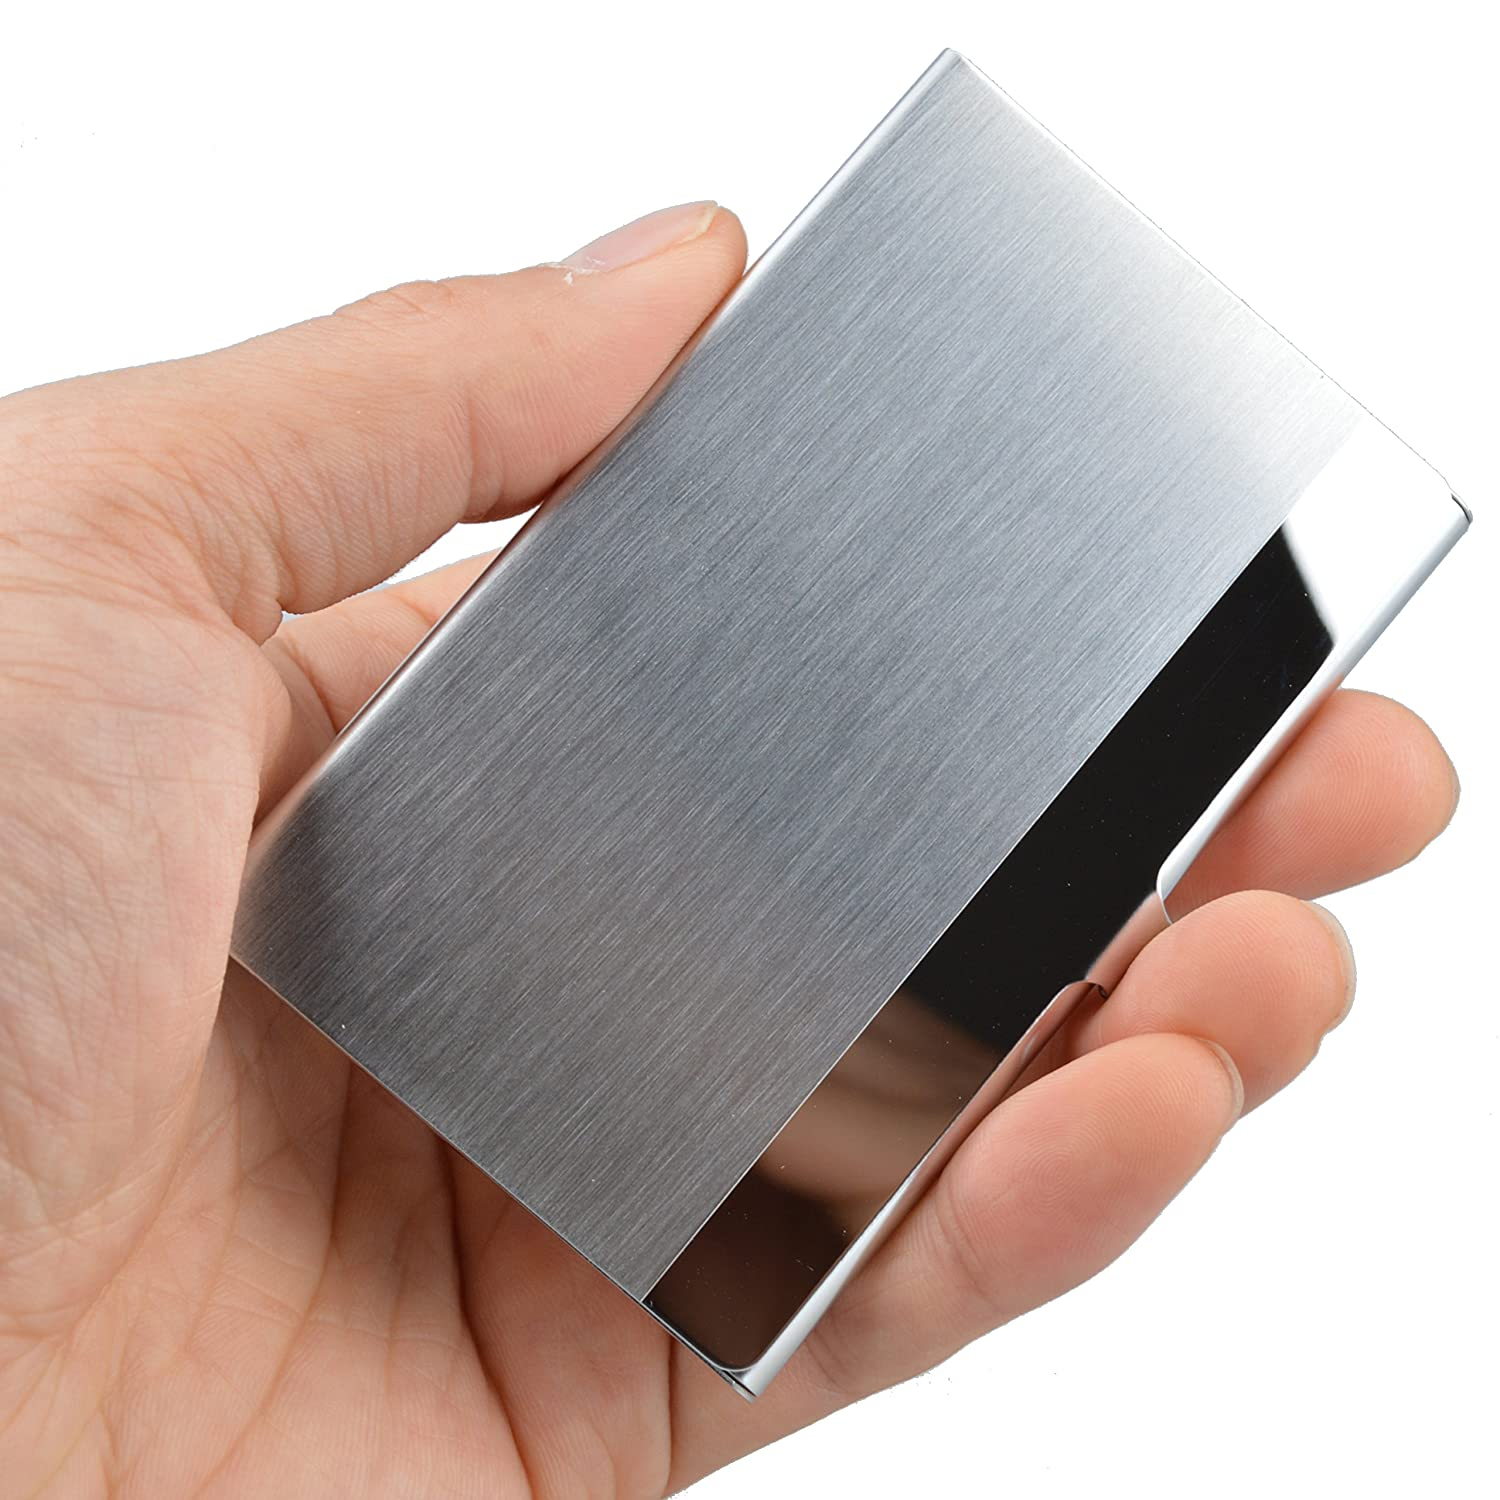 Business card holders amazon office school supplies maxgear professional business card holder business card case stainless steel card holder keep business cards in magicingreecefo Gallery